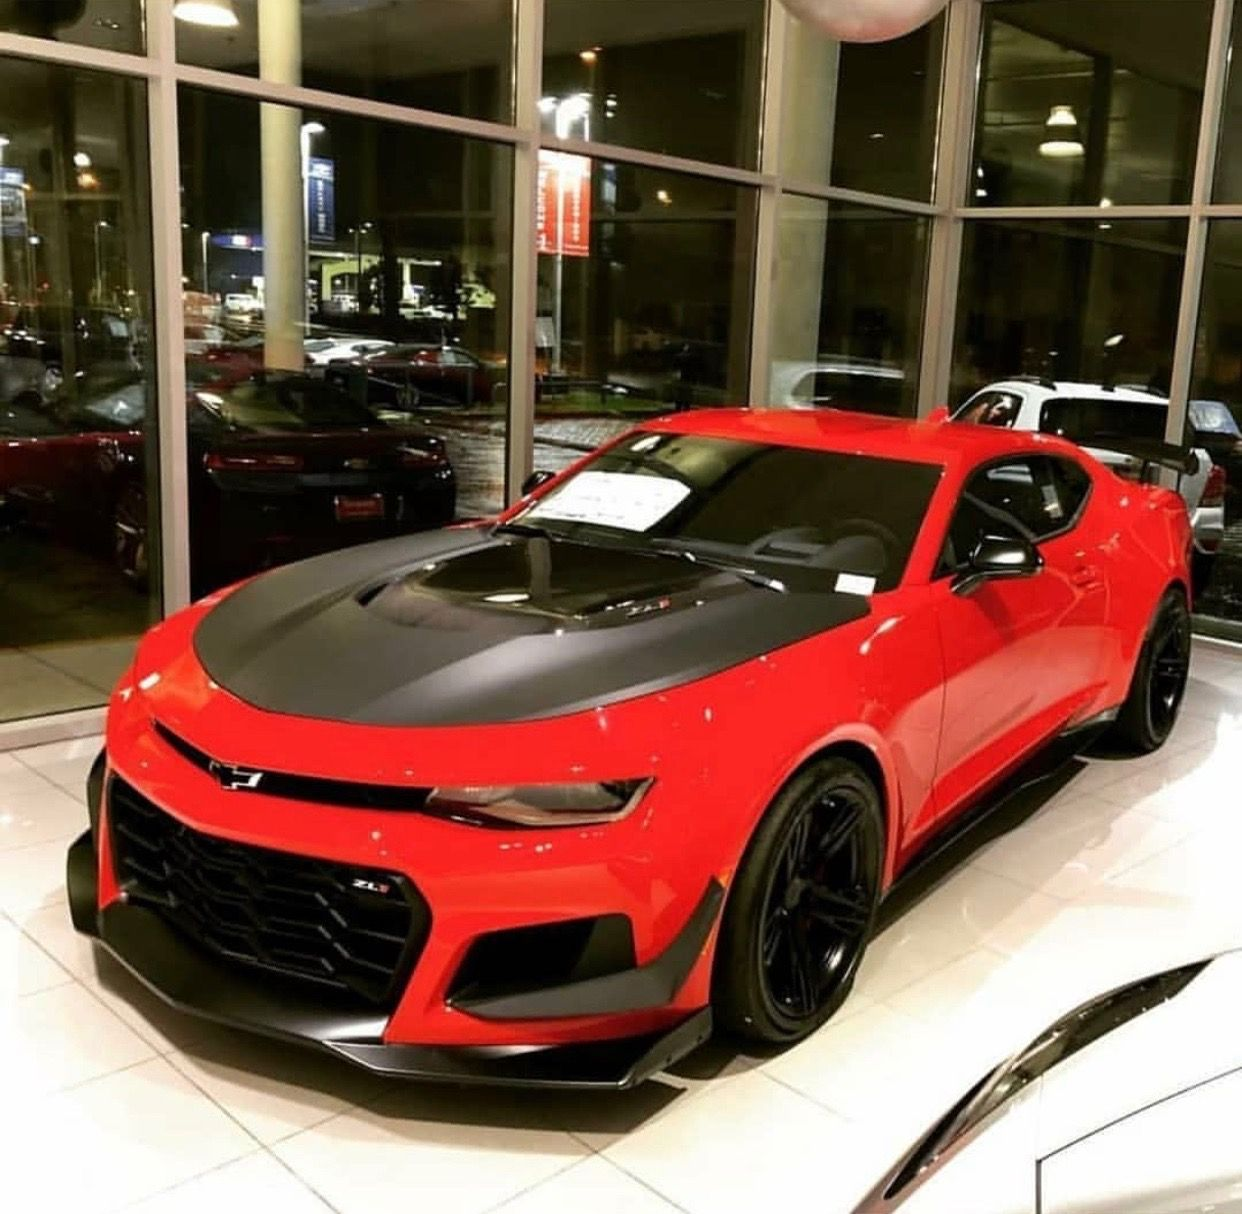 Chevrolet Camaro ZL1 1LE painted in Red Hot Photo taken by ...